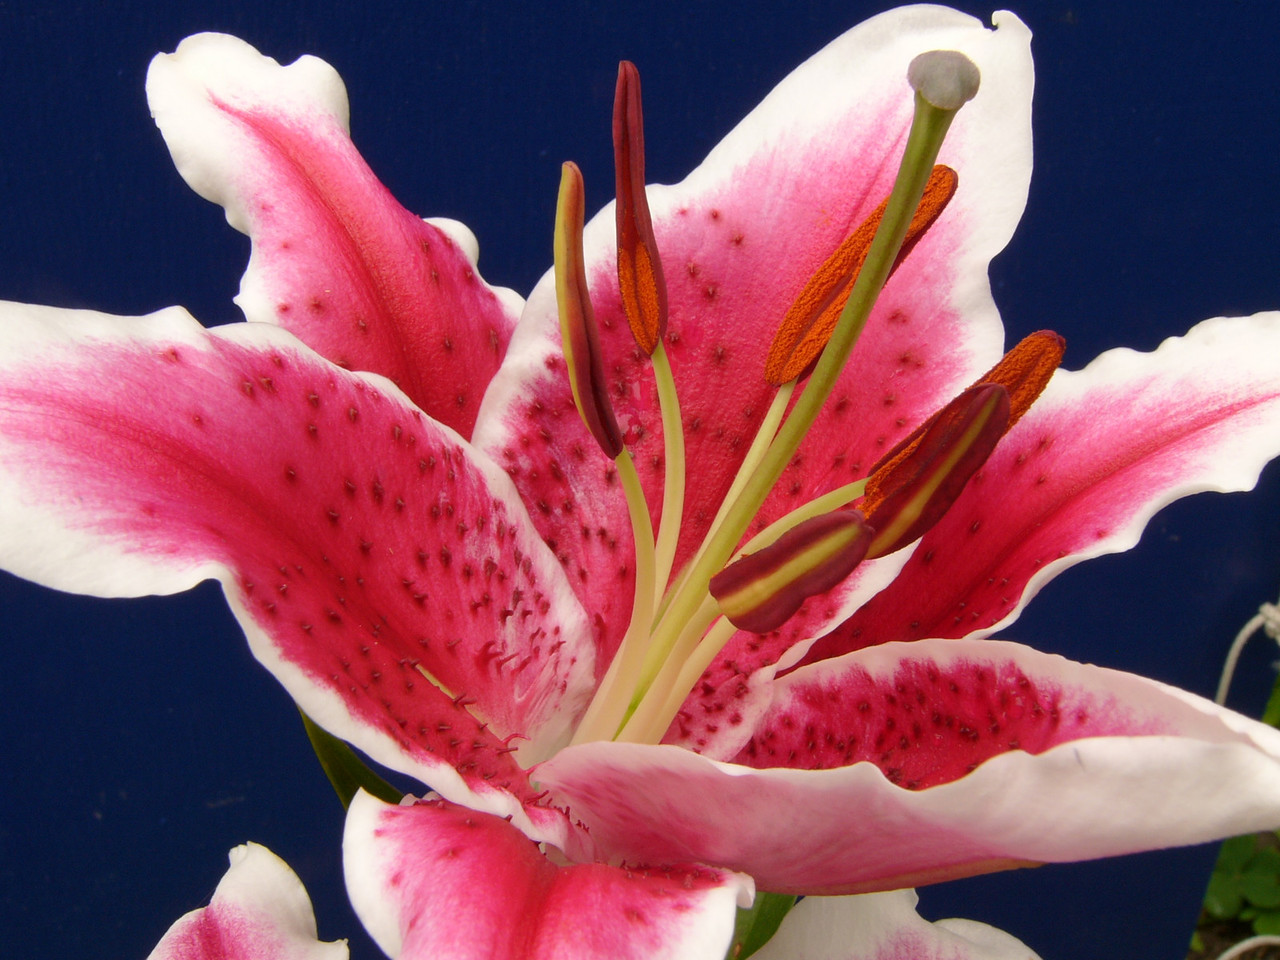 Asiatic Lily. Photograph taken with DMC-FZ10 by David Fong.